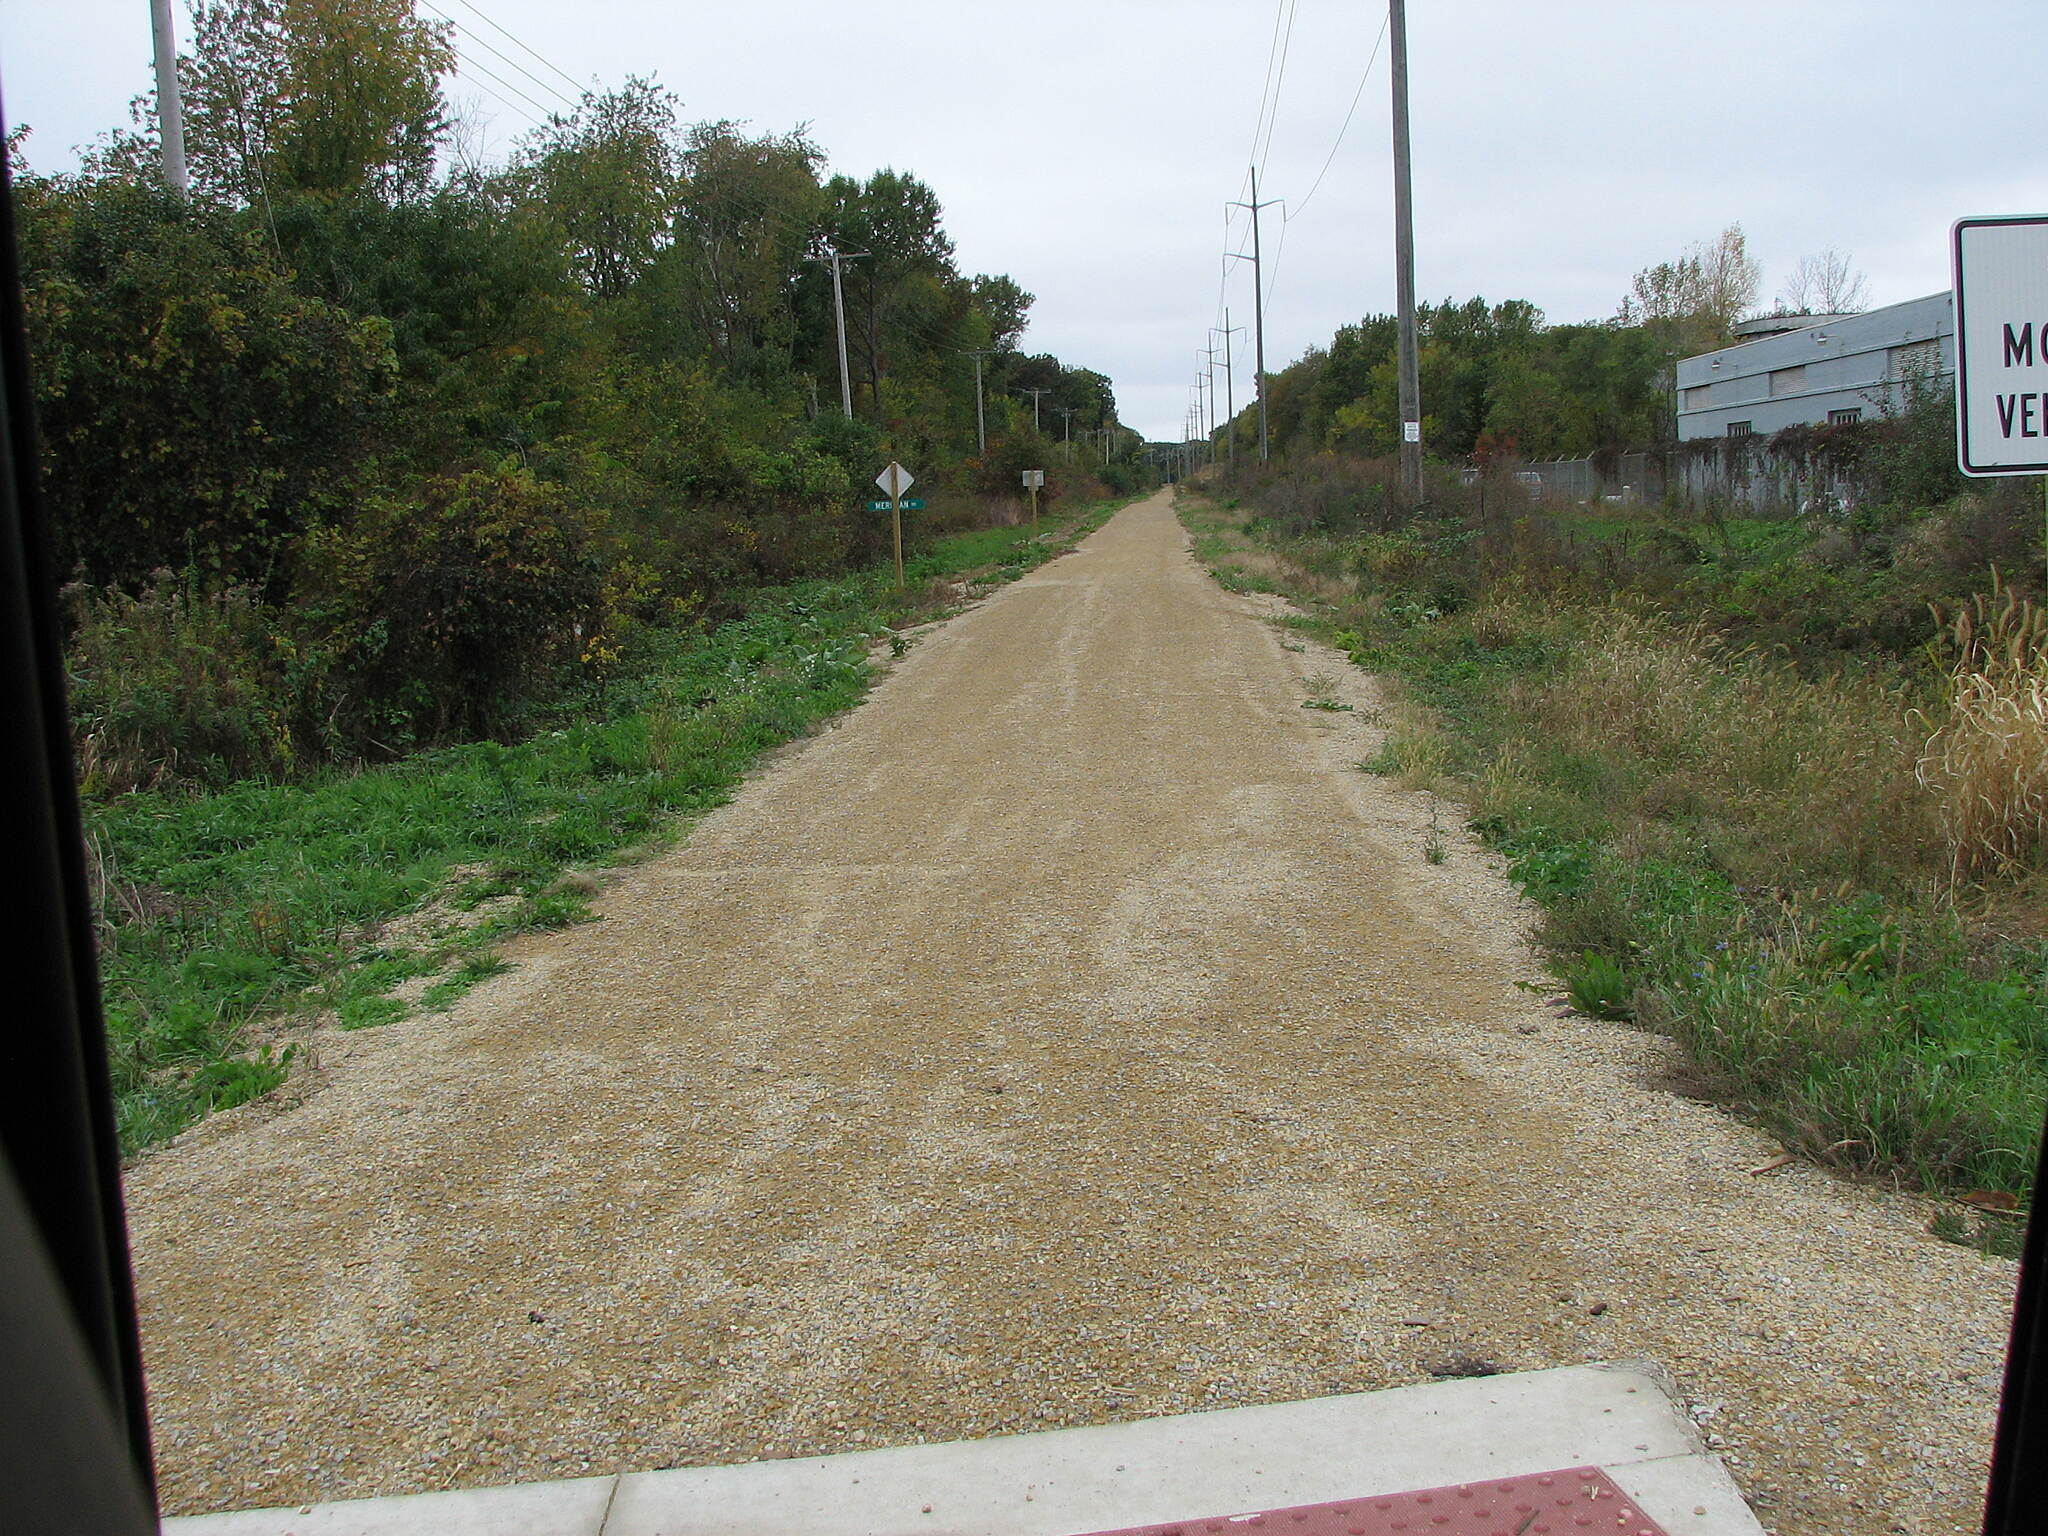 Pecatonica Prairie Trail Looking West at Meridian Road The eastern terminus is about a block south of US 20 on Meridian Road. No parking. No signs, but it is right under the big electric lines so it is hard to miss. There is a crosswalk painted across Meridian Road there is no trail on the other side.